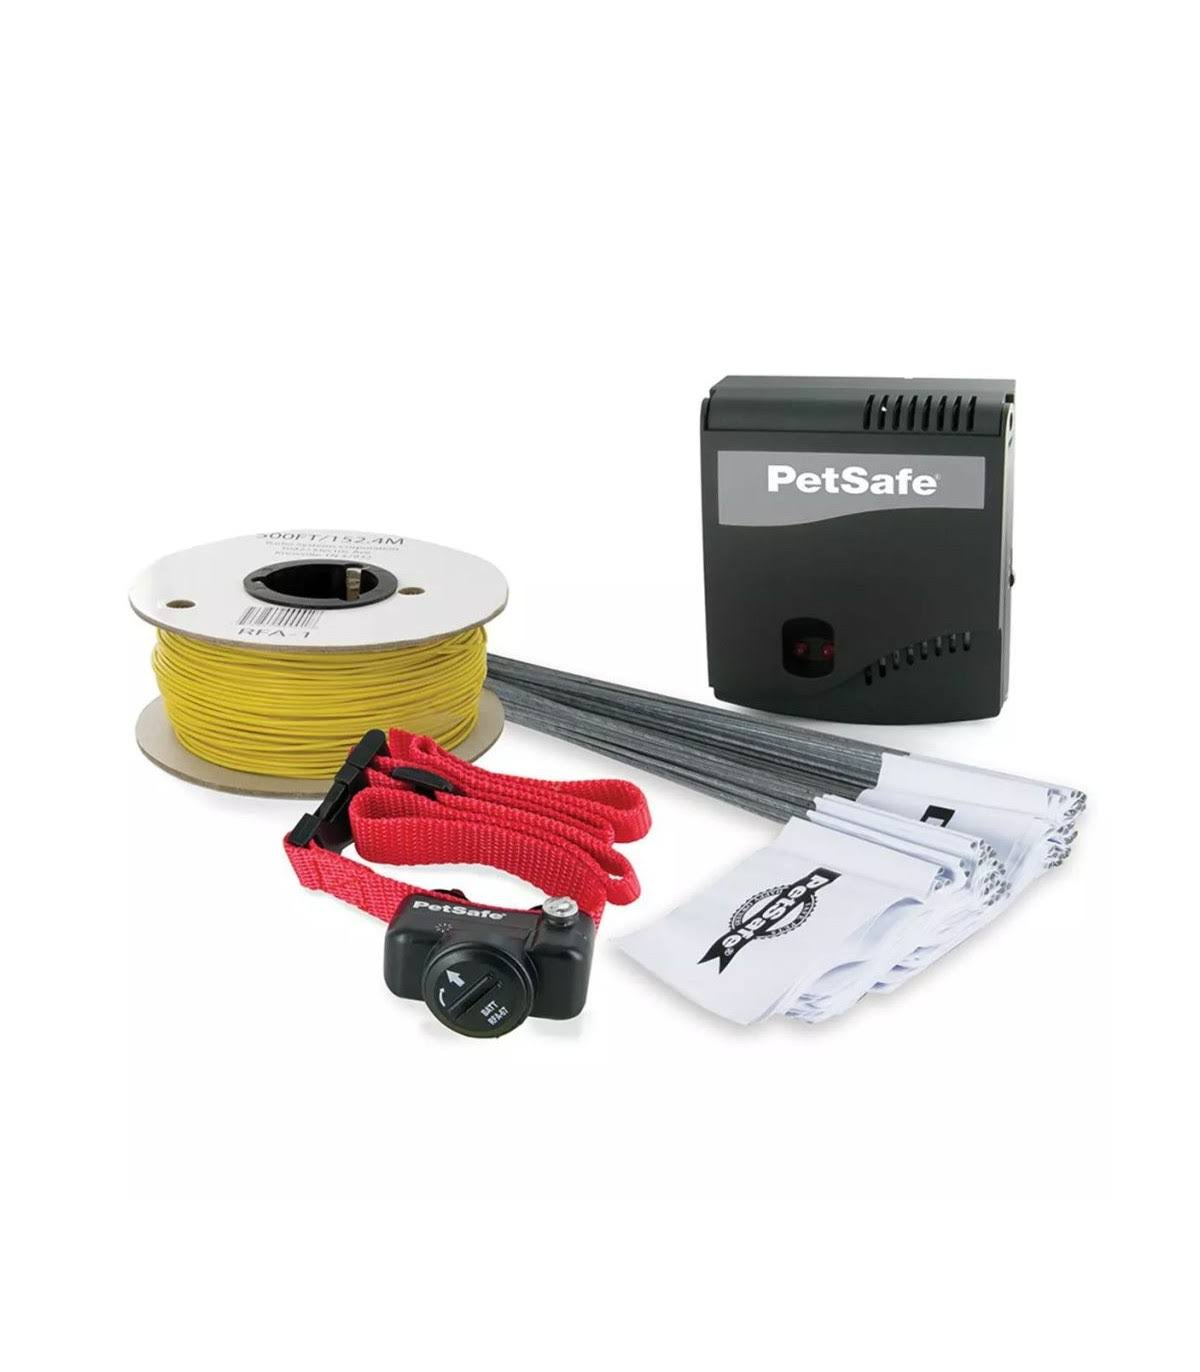 PetSafe Ultralight containment system